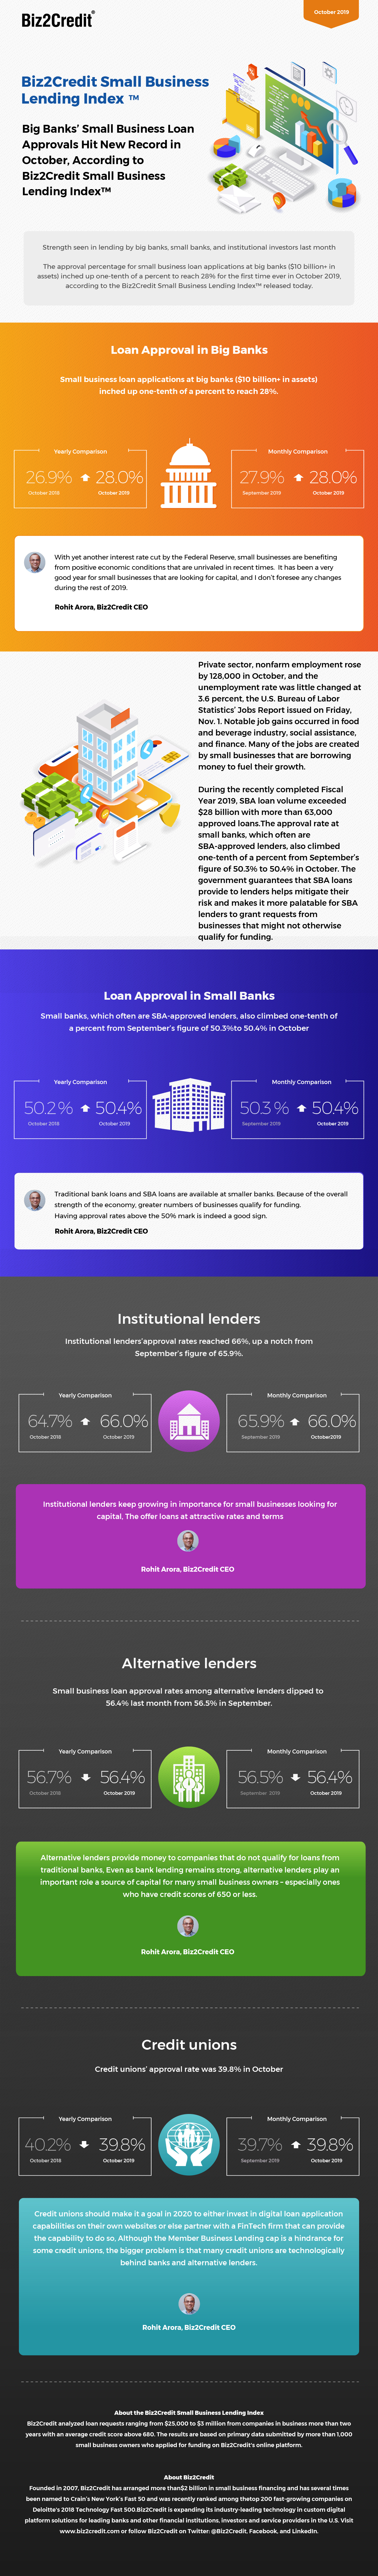 October 2019 Lending Index Infographic